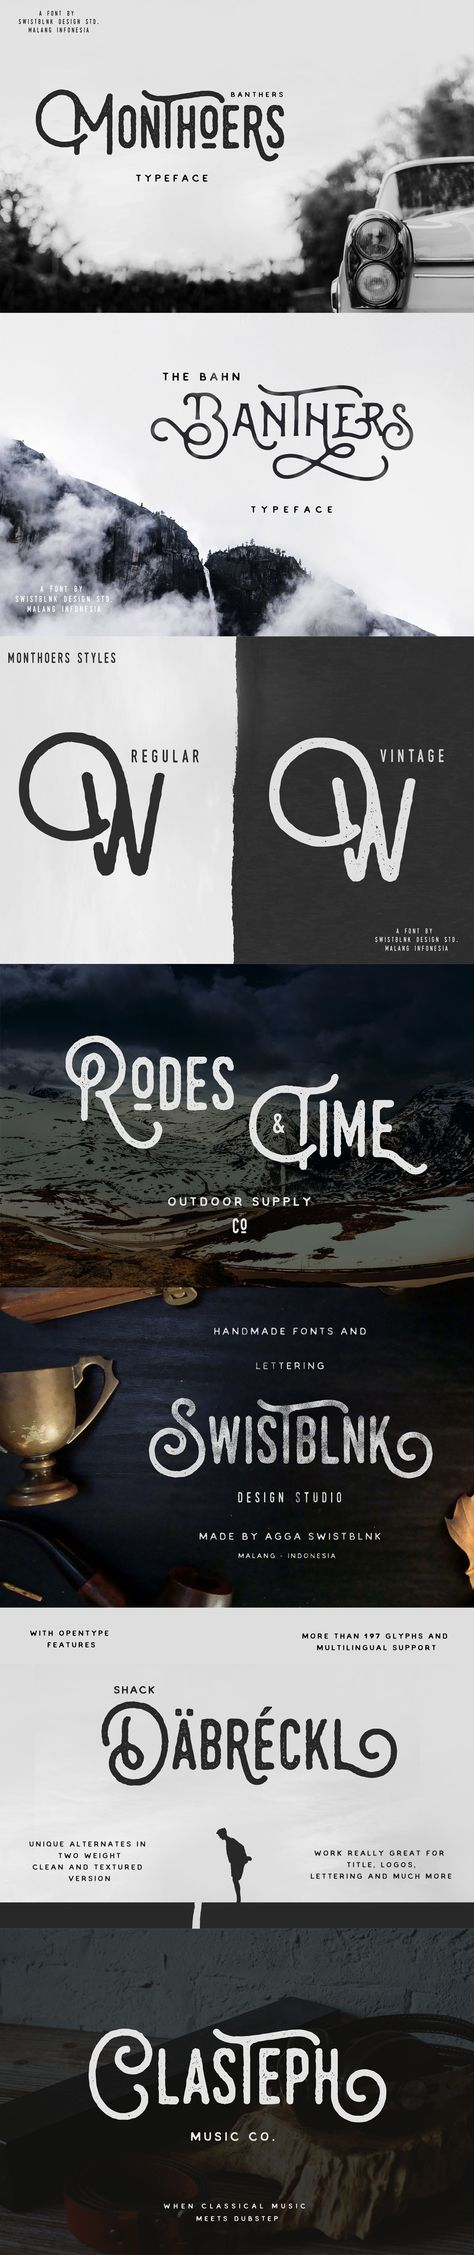 Monthoers is #handmade modern #vintage #textured display #typefaces, which is combining the style of classic #typography with an modern #handlettering style.